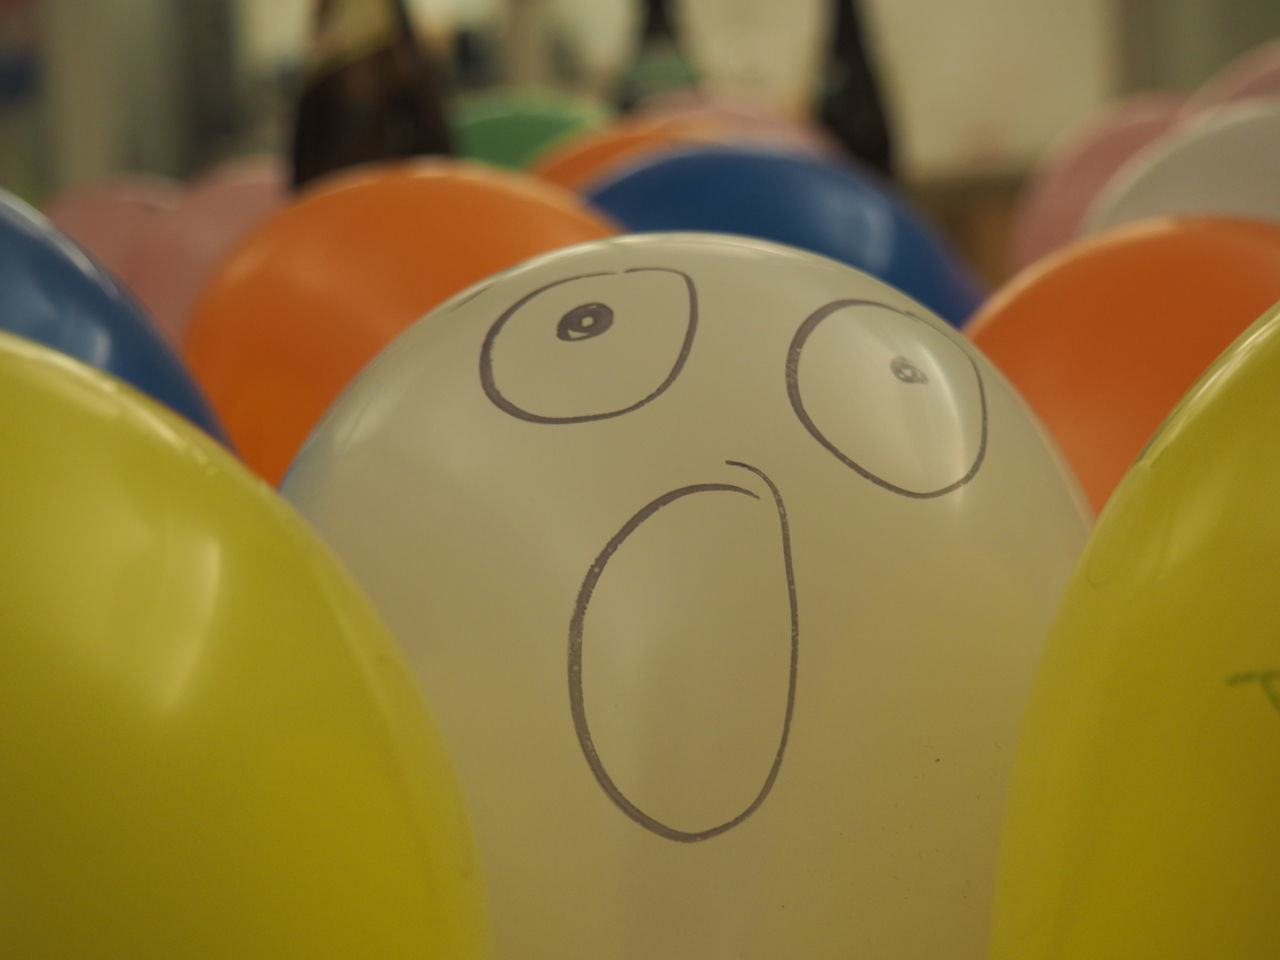 Balloon overflow Balloon Balloonart Balloonfiesta  Ballooning Festival Balloons Balloons🎈 Busy Close-up Color Colors Crowded Emoji Funny Indoors  No People Scared Smile